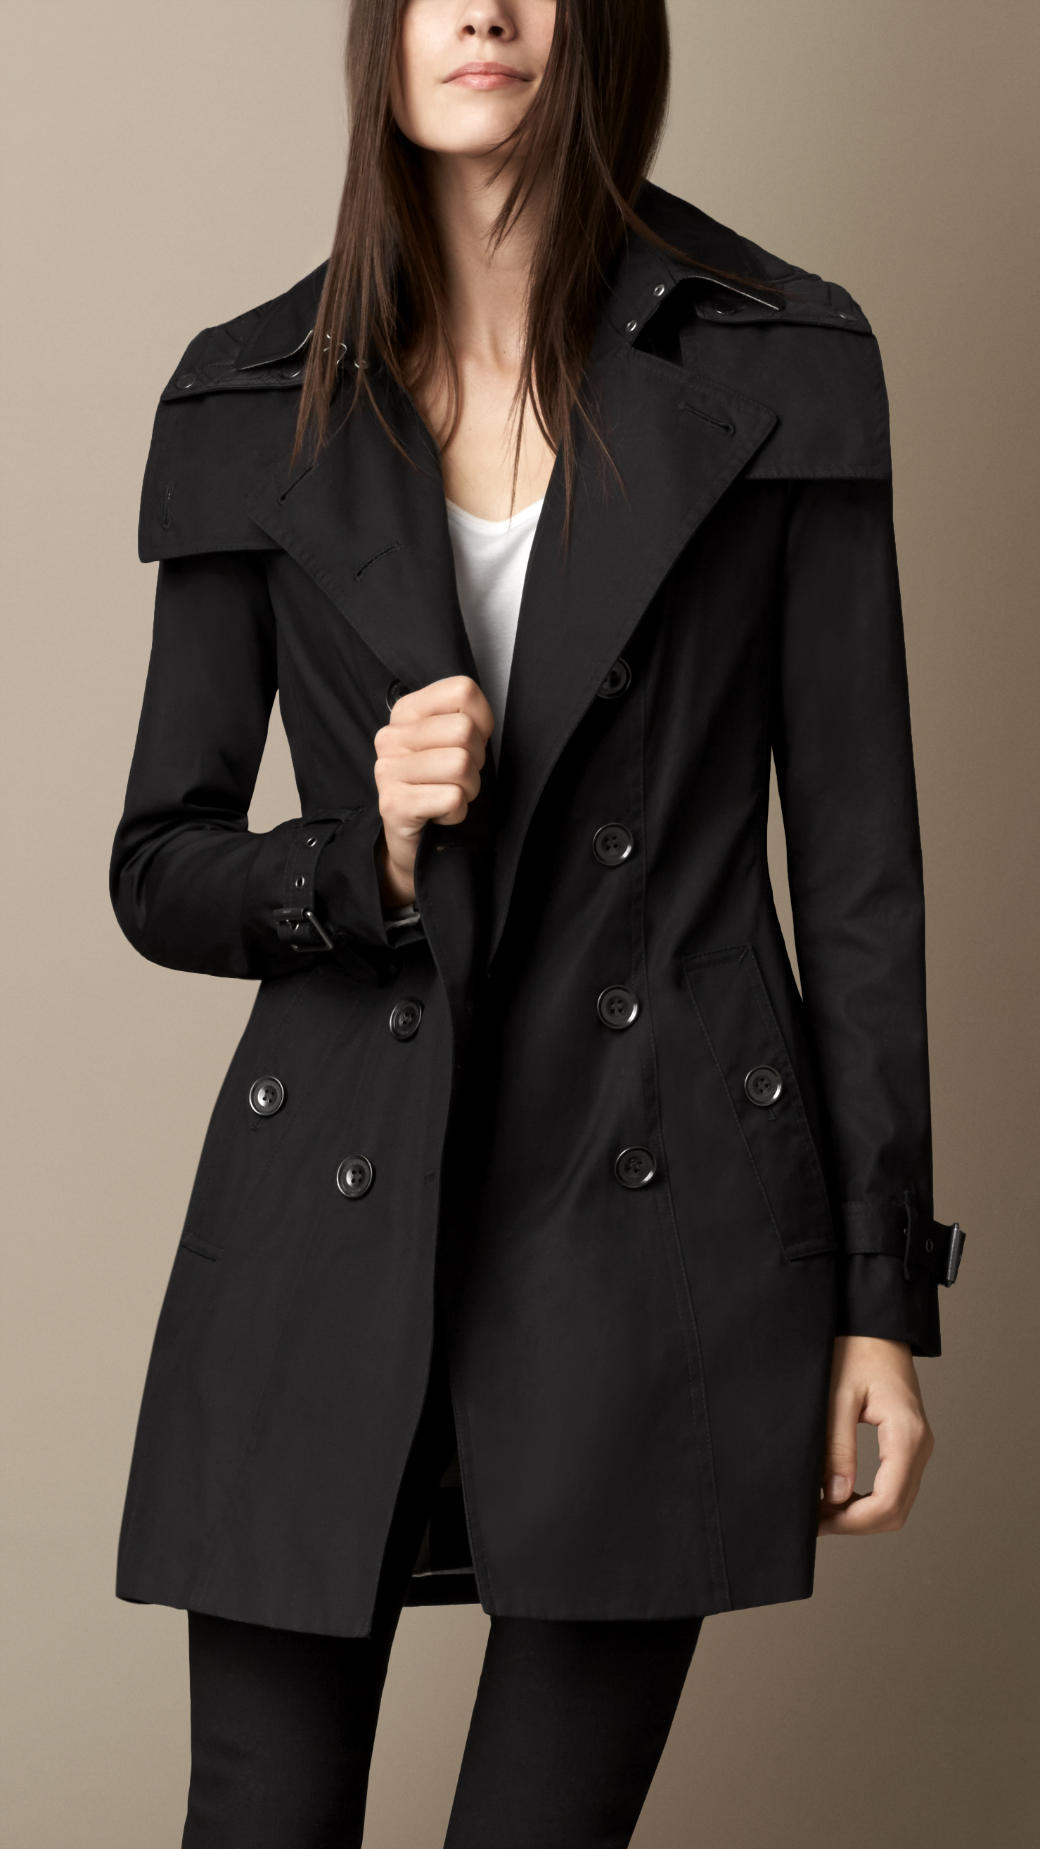 black trench coat with hood - photo #18